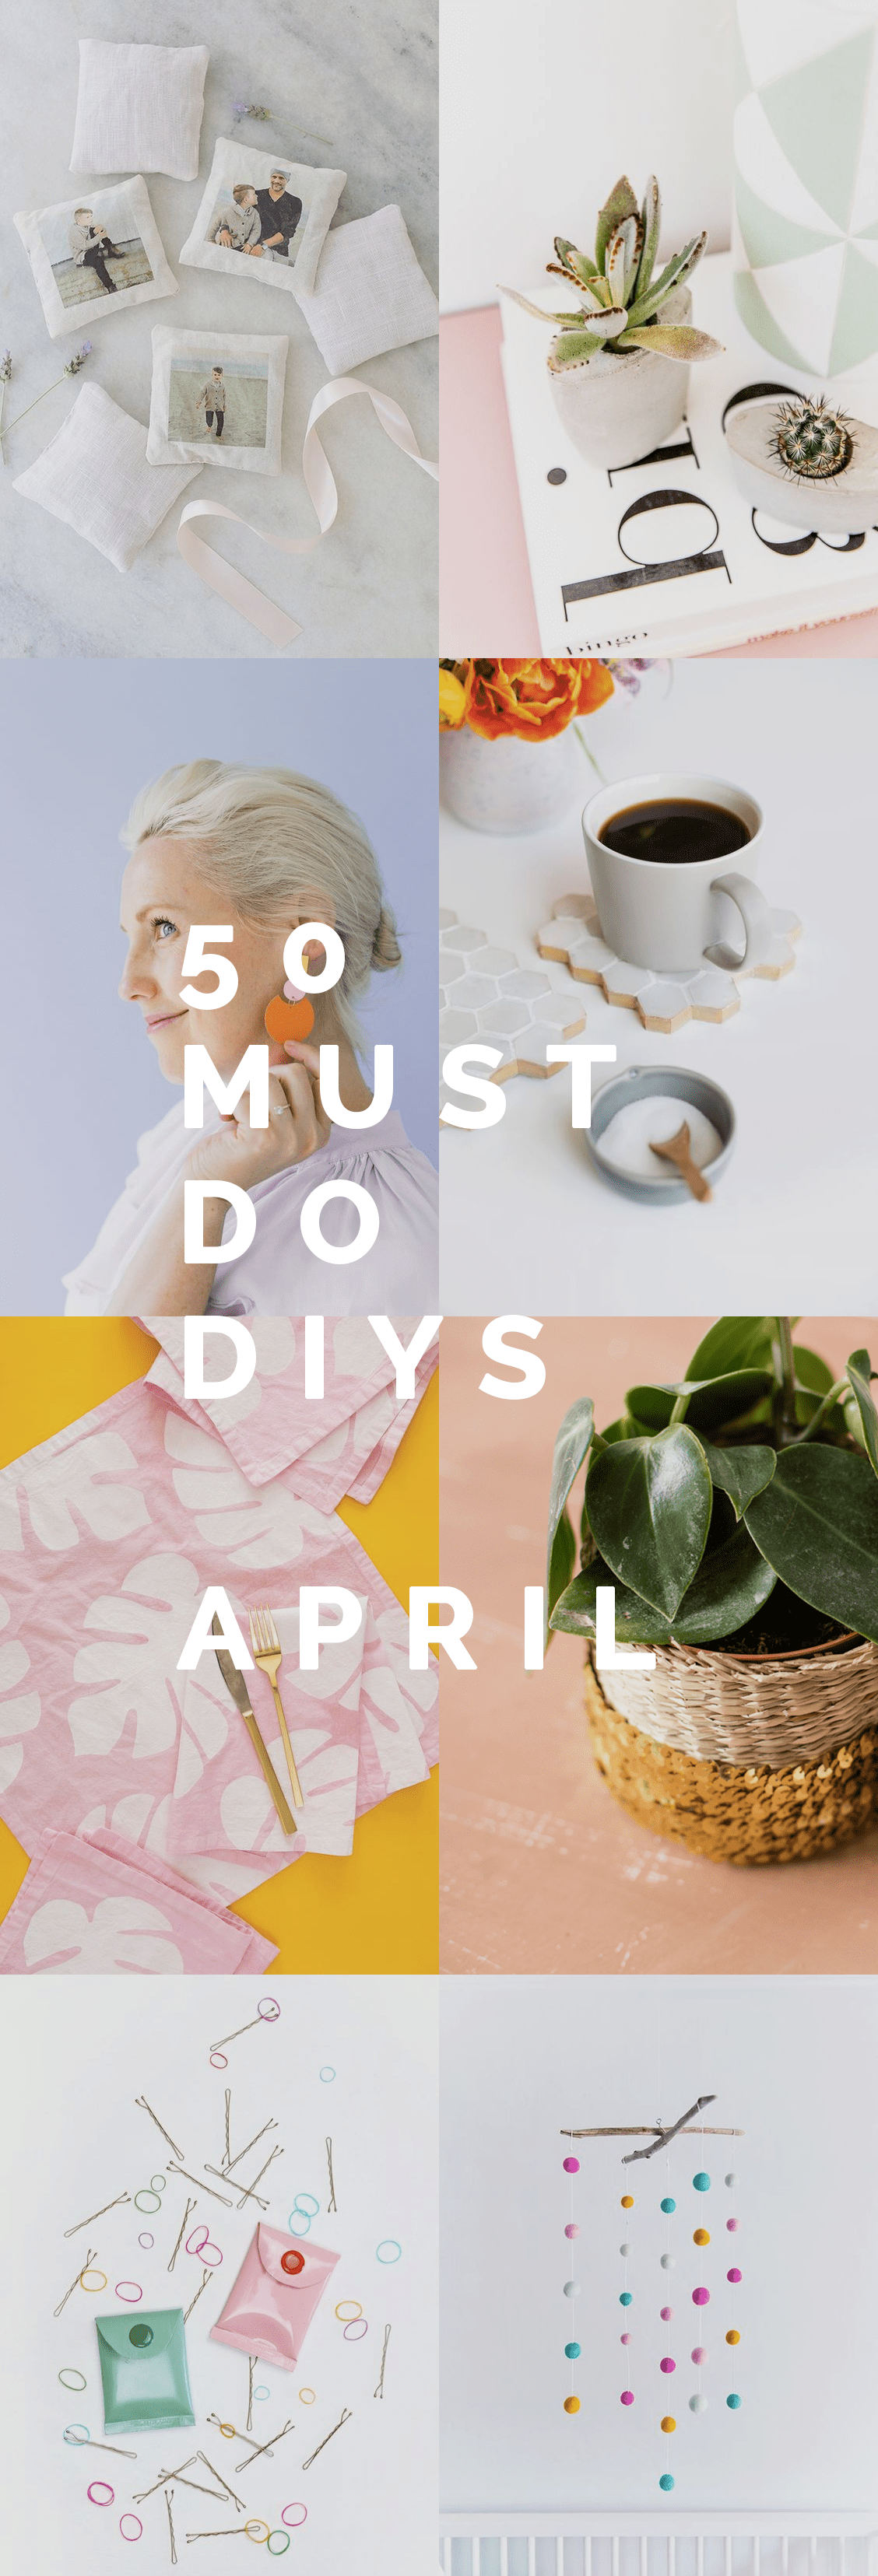 50 Must Have Rv Accessories Rv Supplies In 2019 Expert: 50 Must Do DIYs April - One Year Anniversary